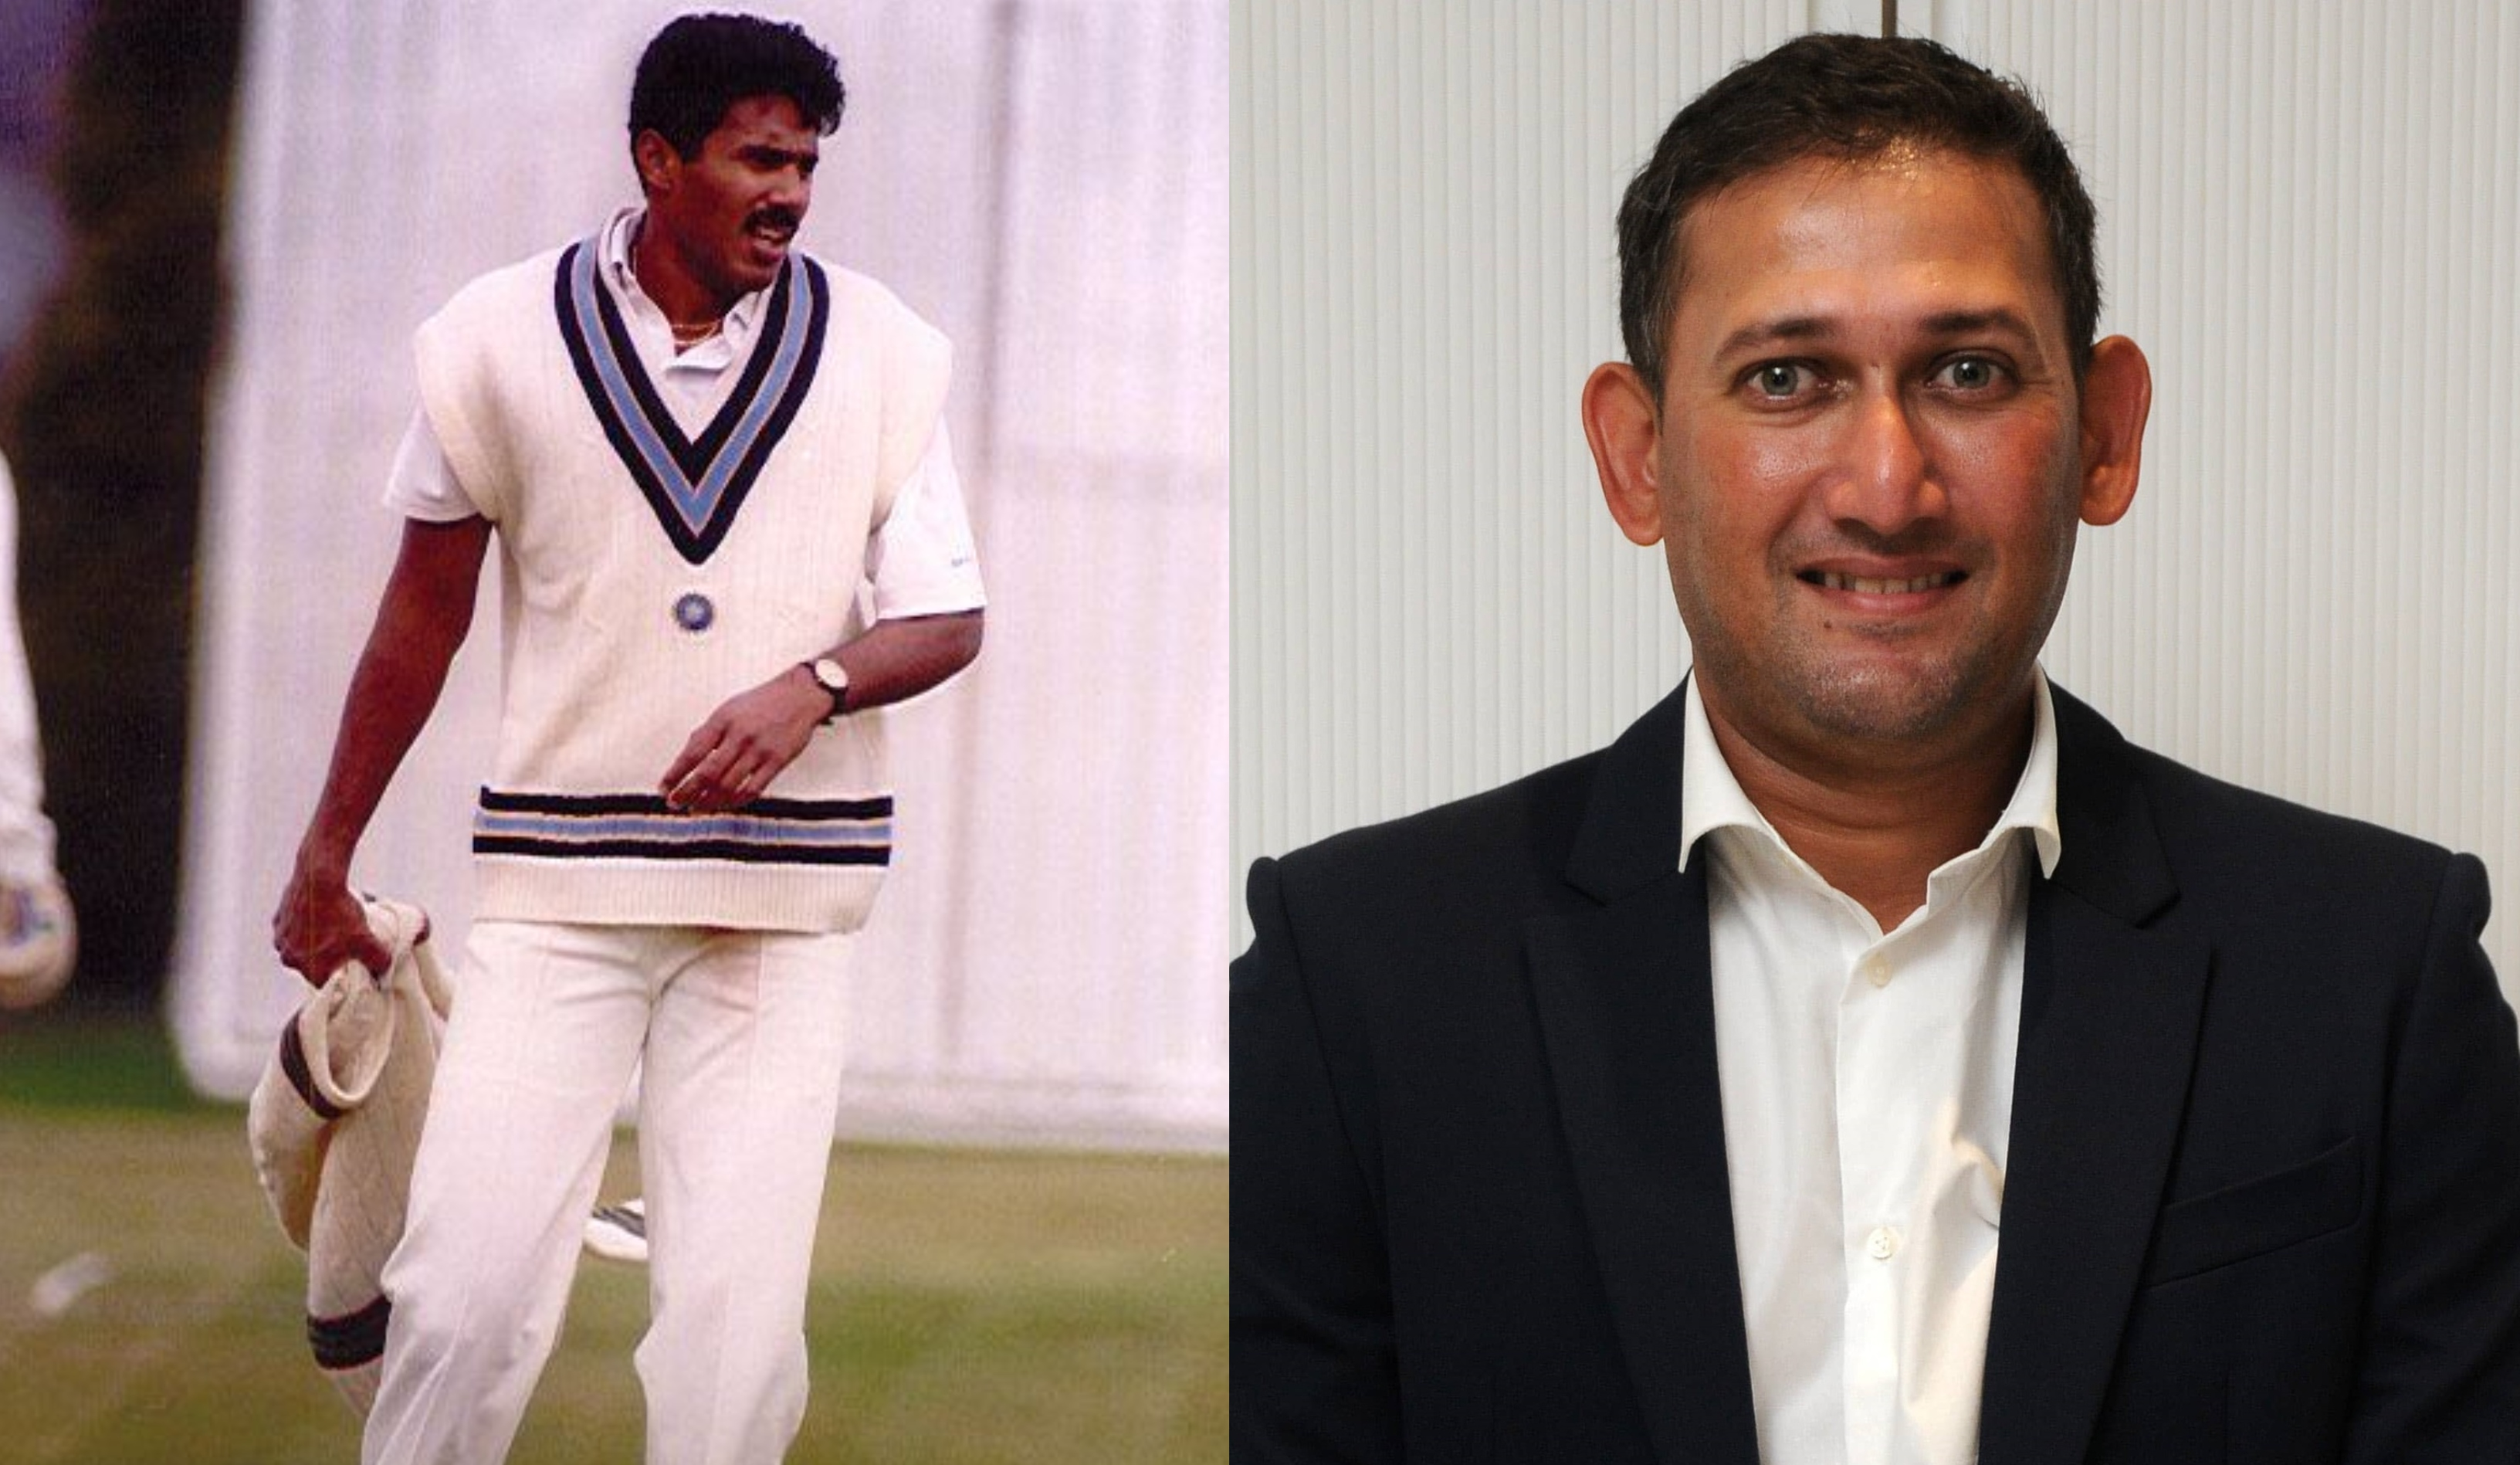 Abey Kuruvilla will face stiff competition from Ajit Agarkar for the role | Getty Images